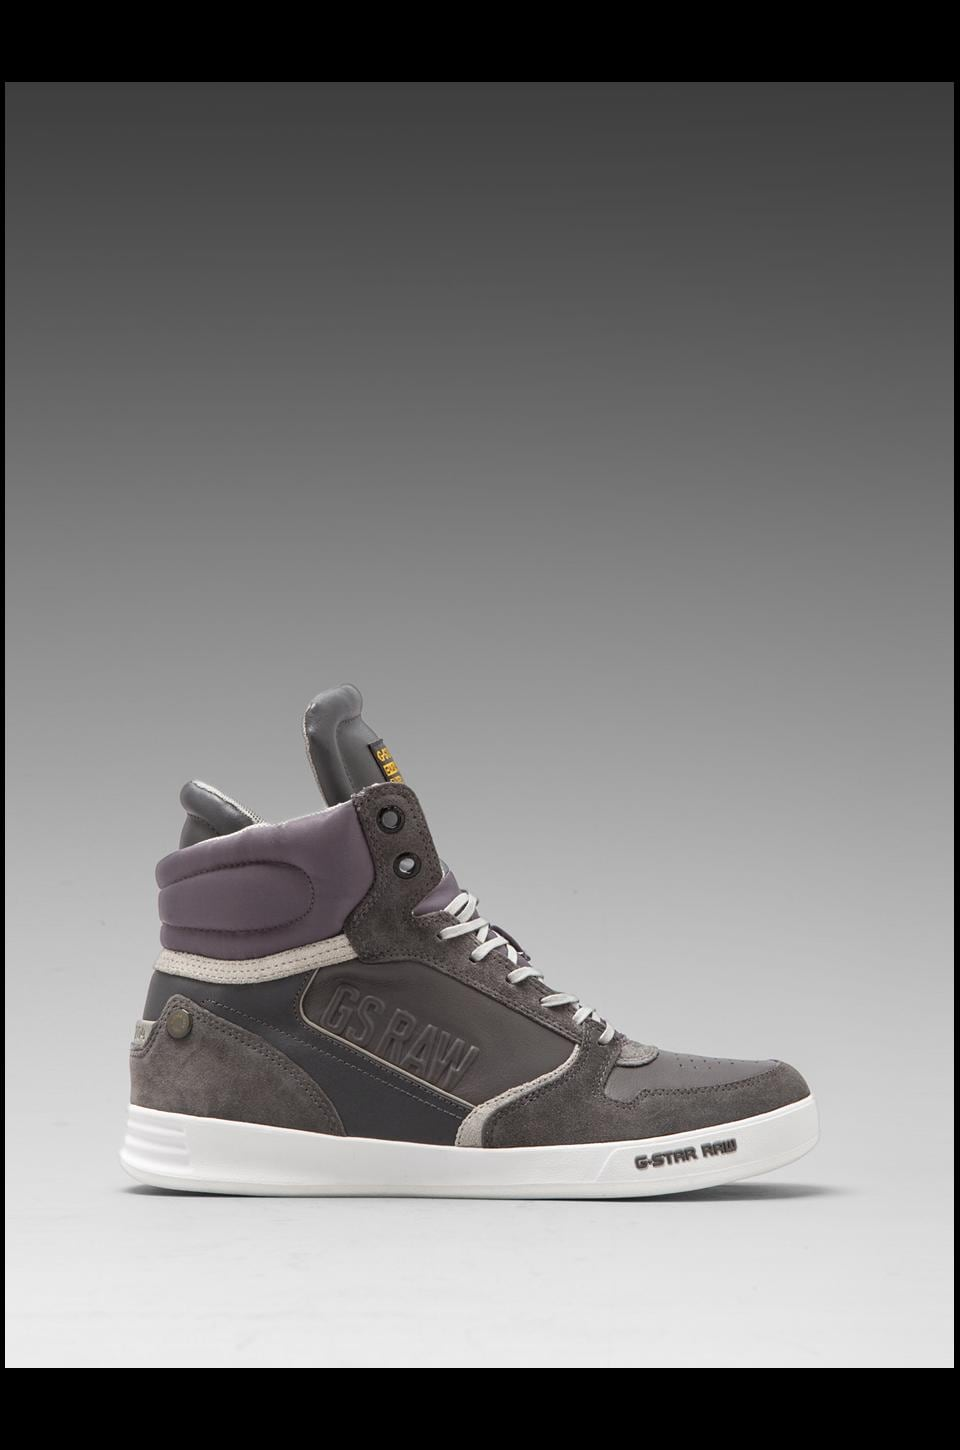 G-Star Yard Pyro in Dark Grey Leather & Suede